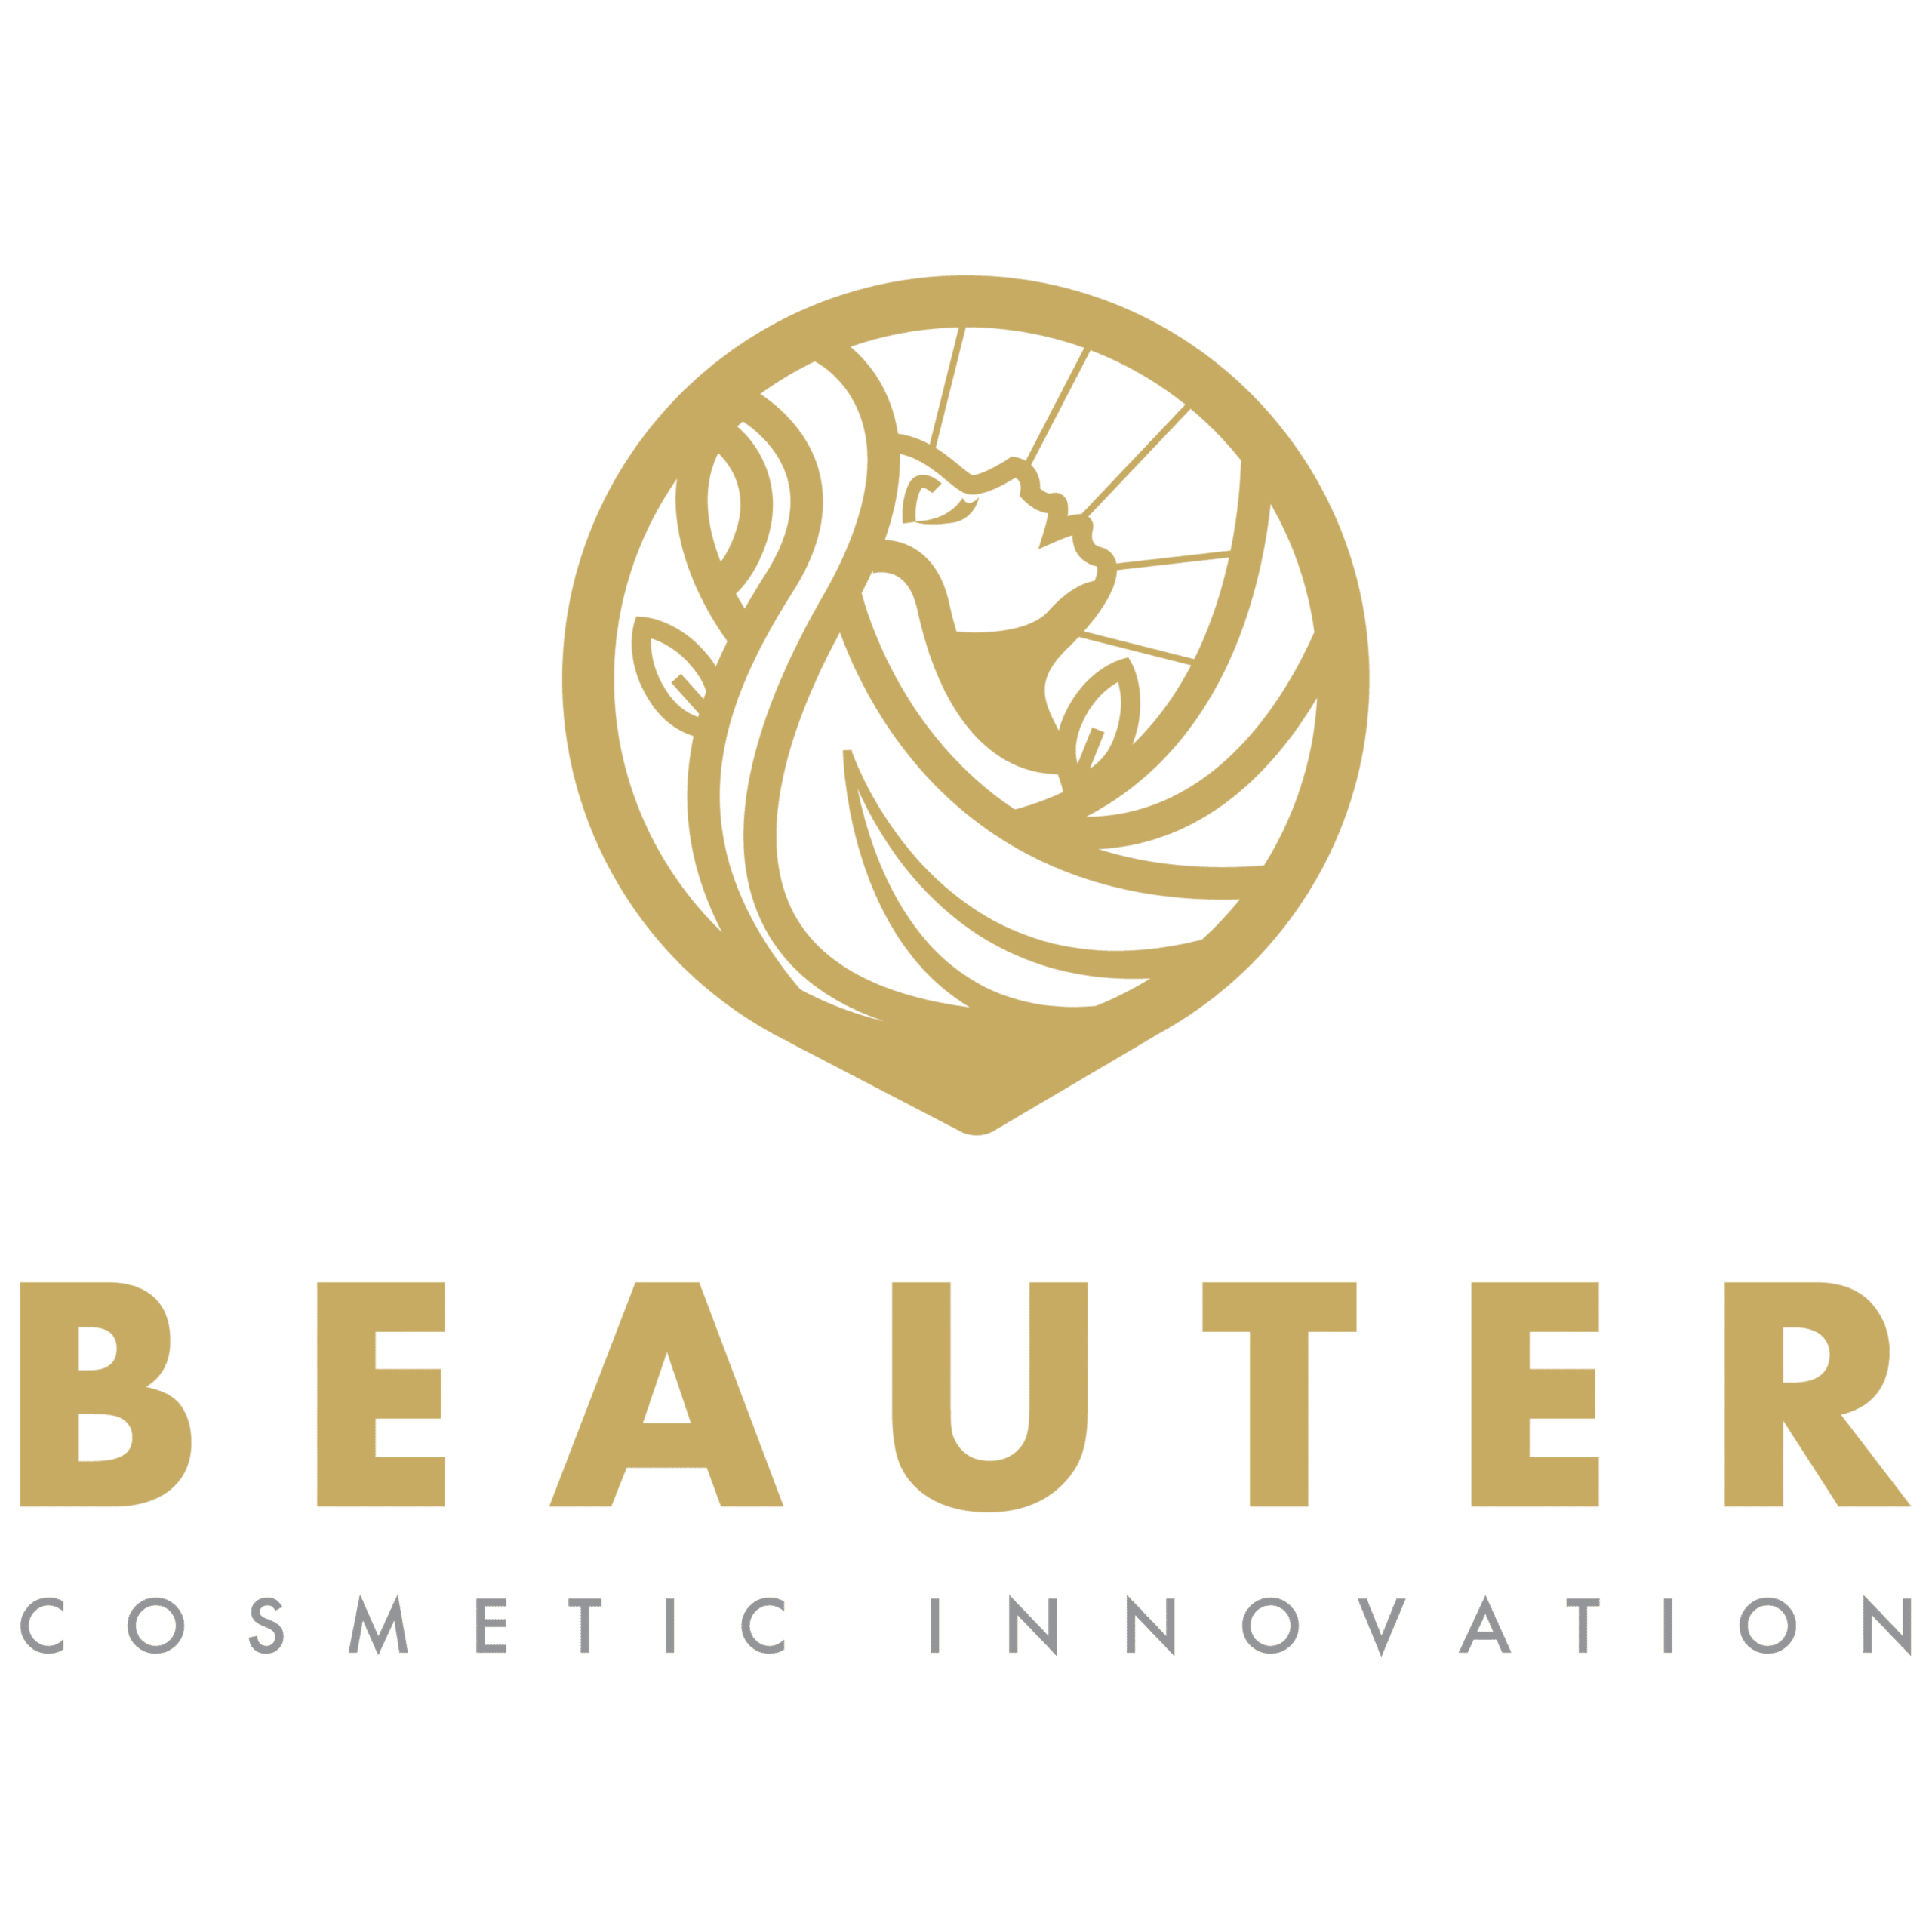 Beauter Cosmetic